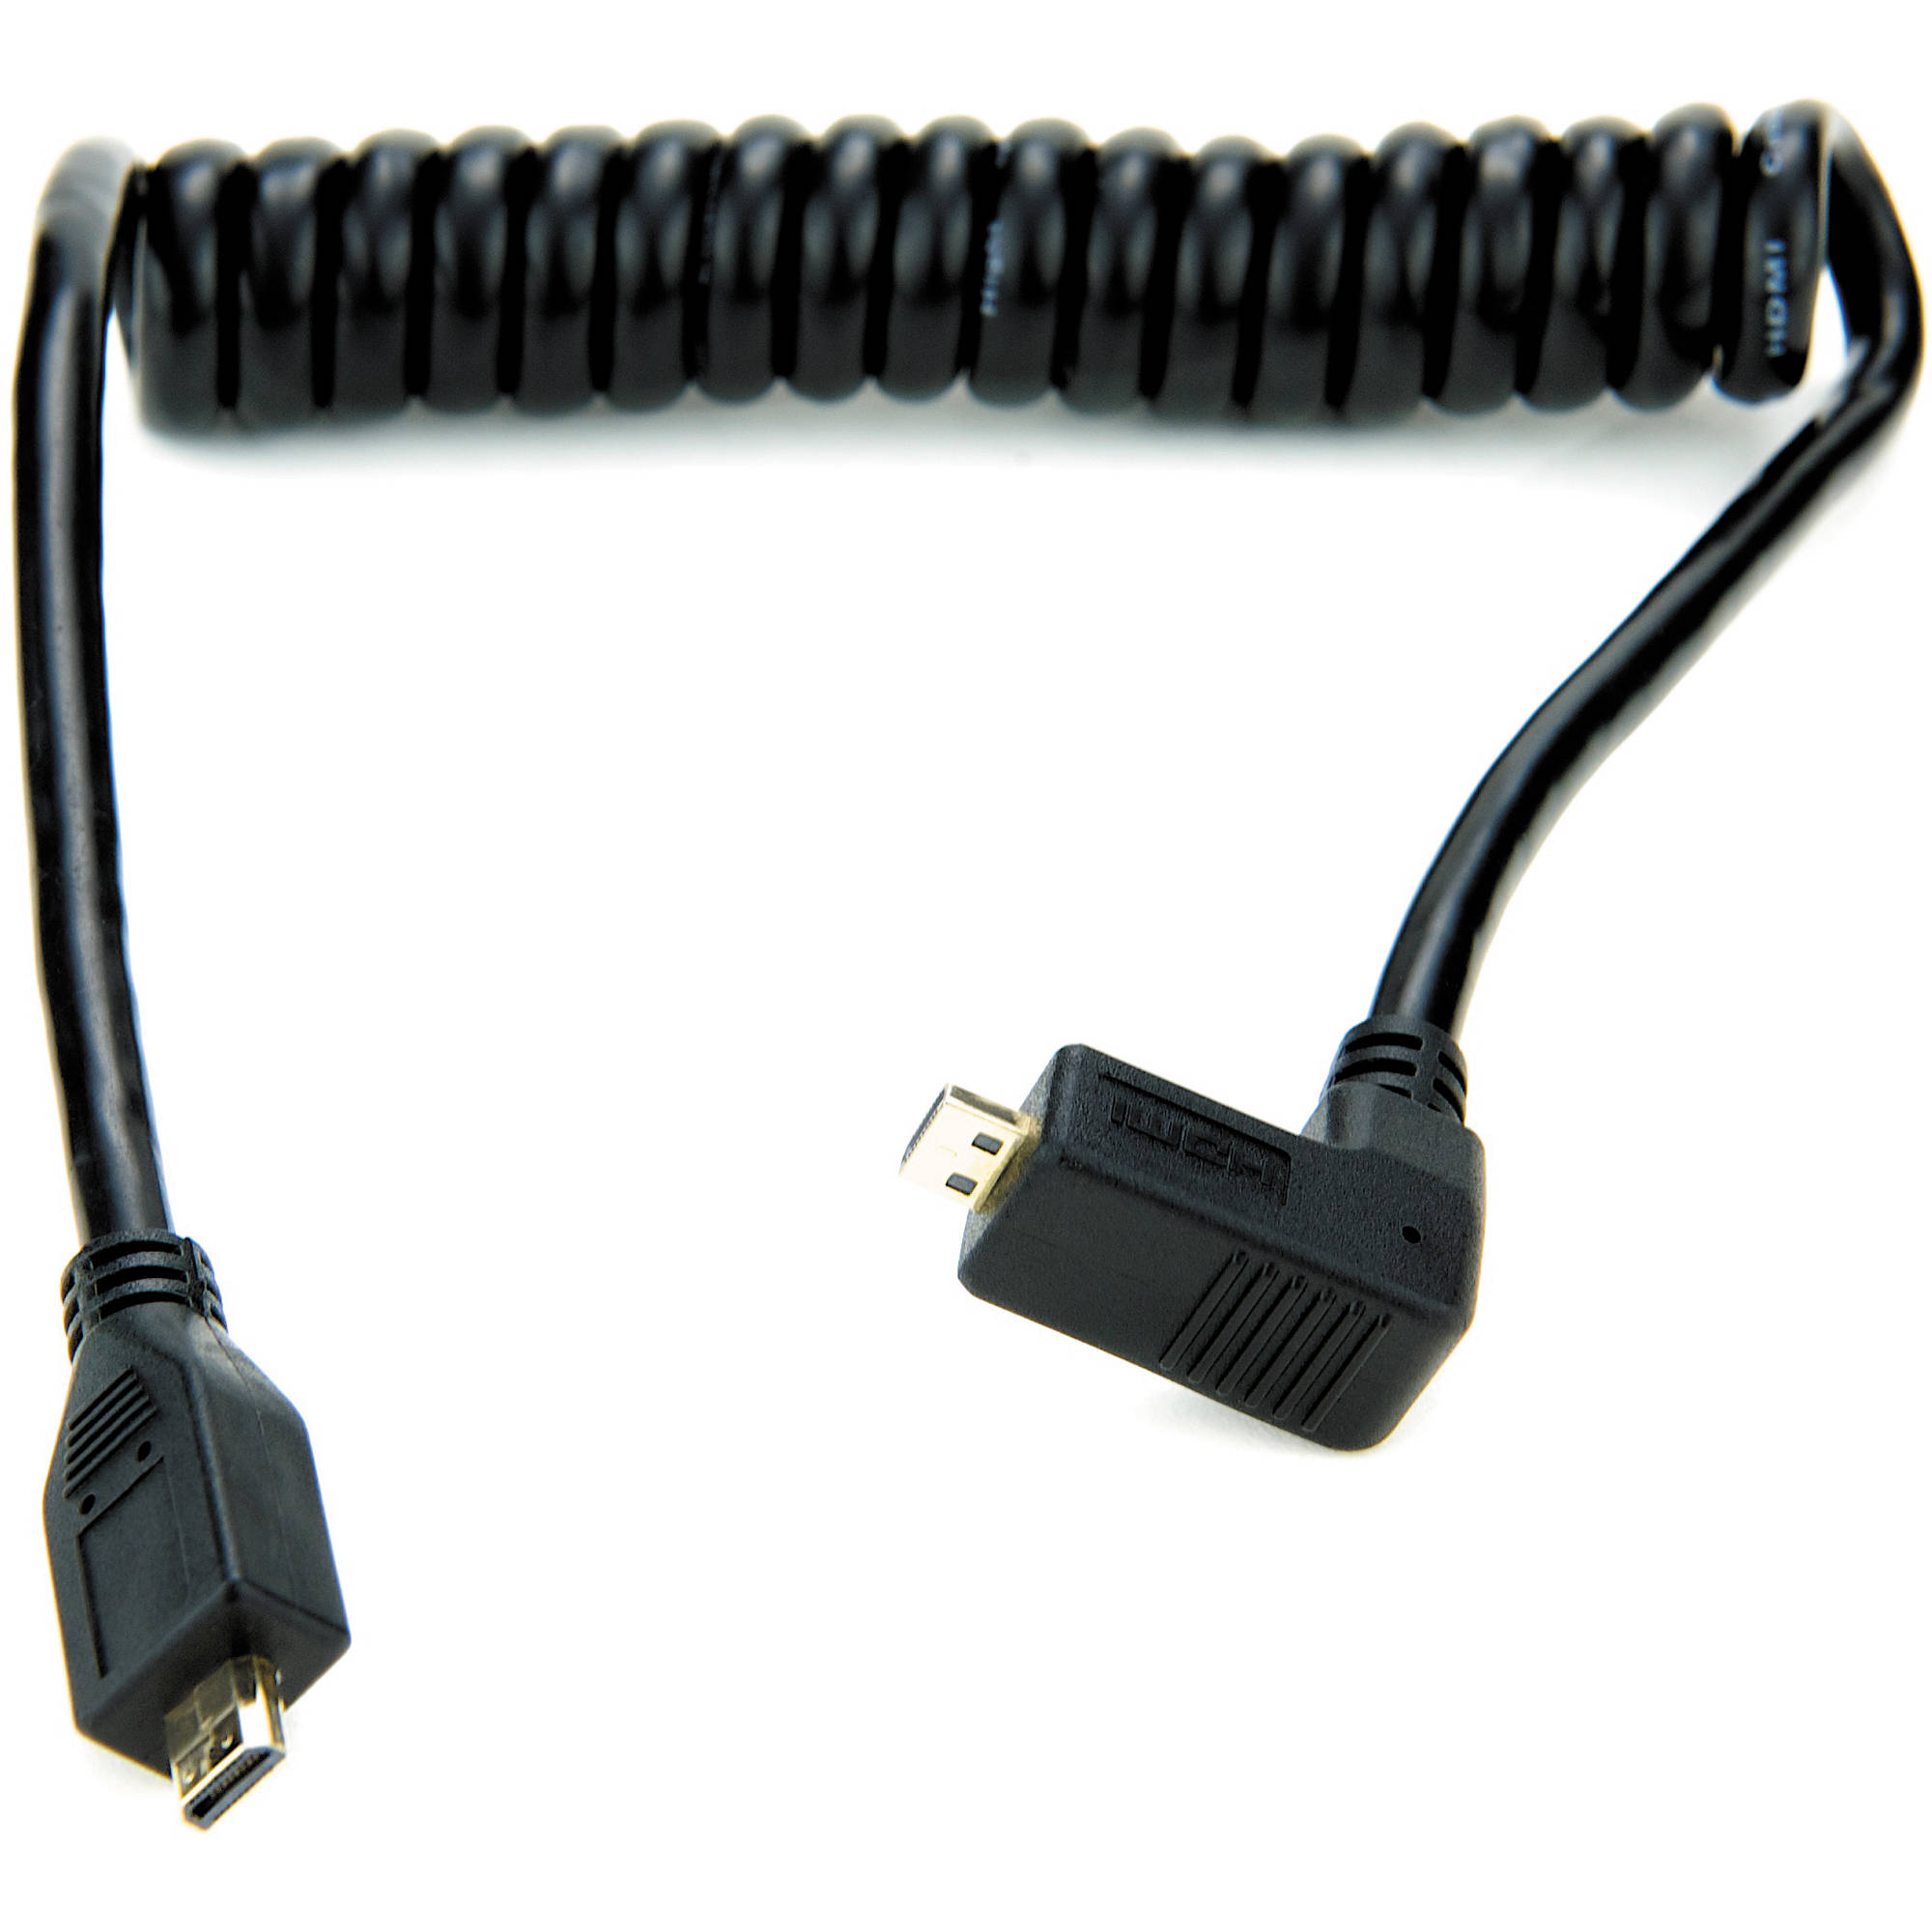 atomos right angle micro to micro hdmi coiled cable atomcab005. Black Bedroom Furniture Sets. Home Design Ideas